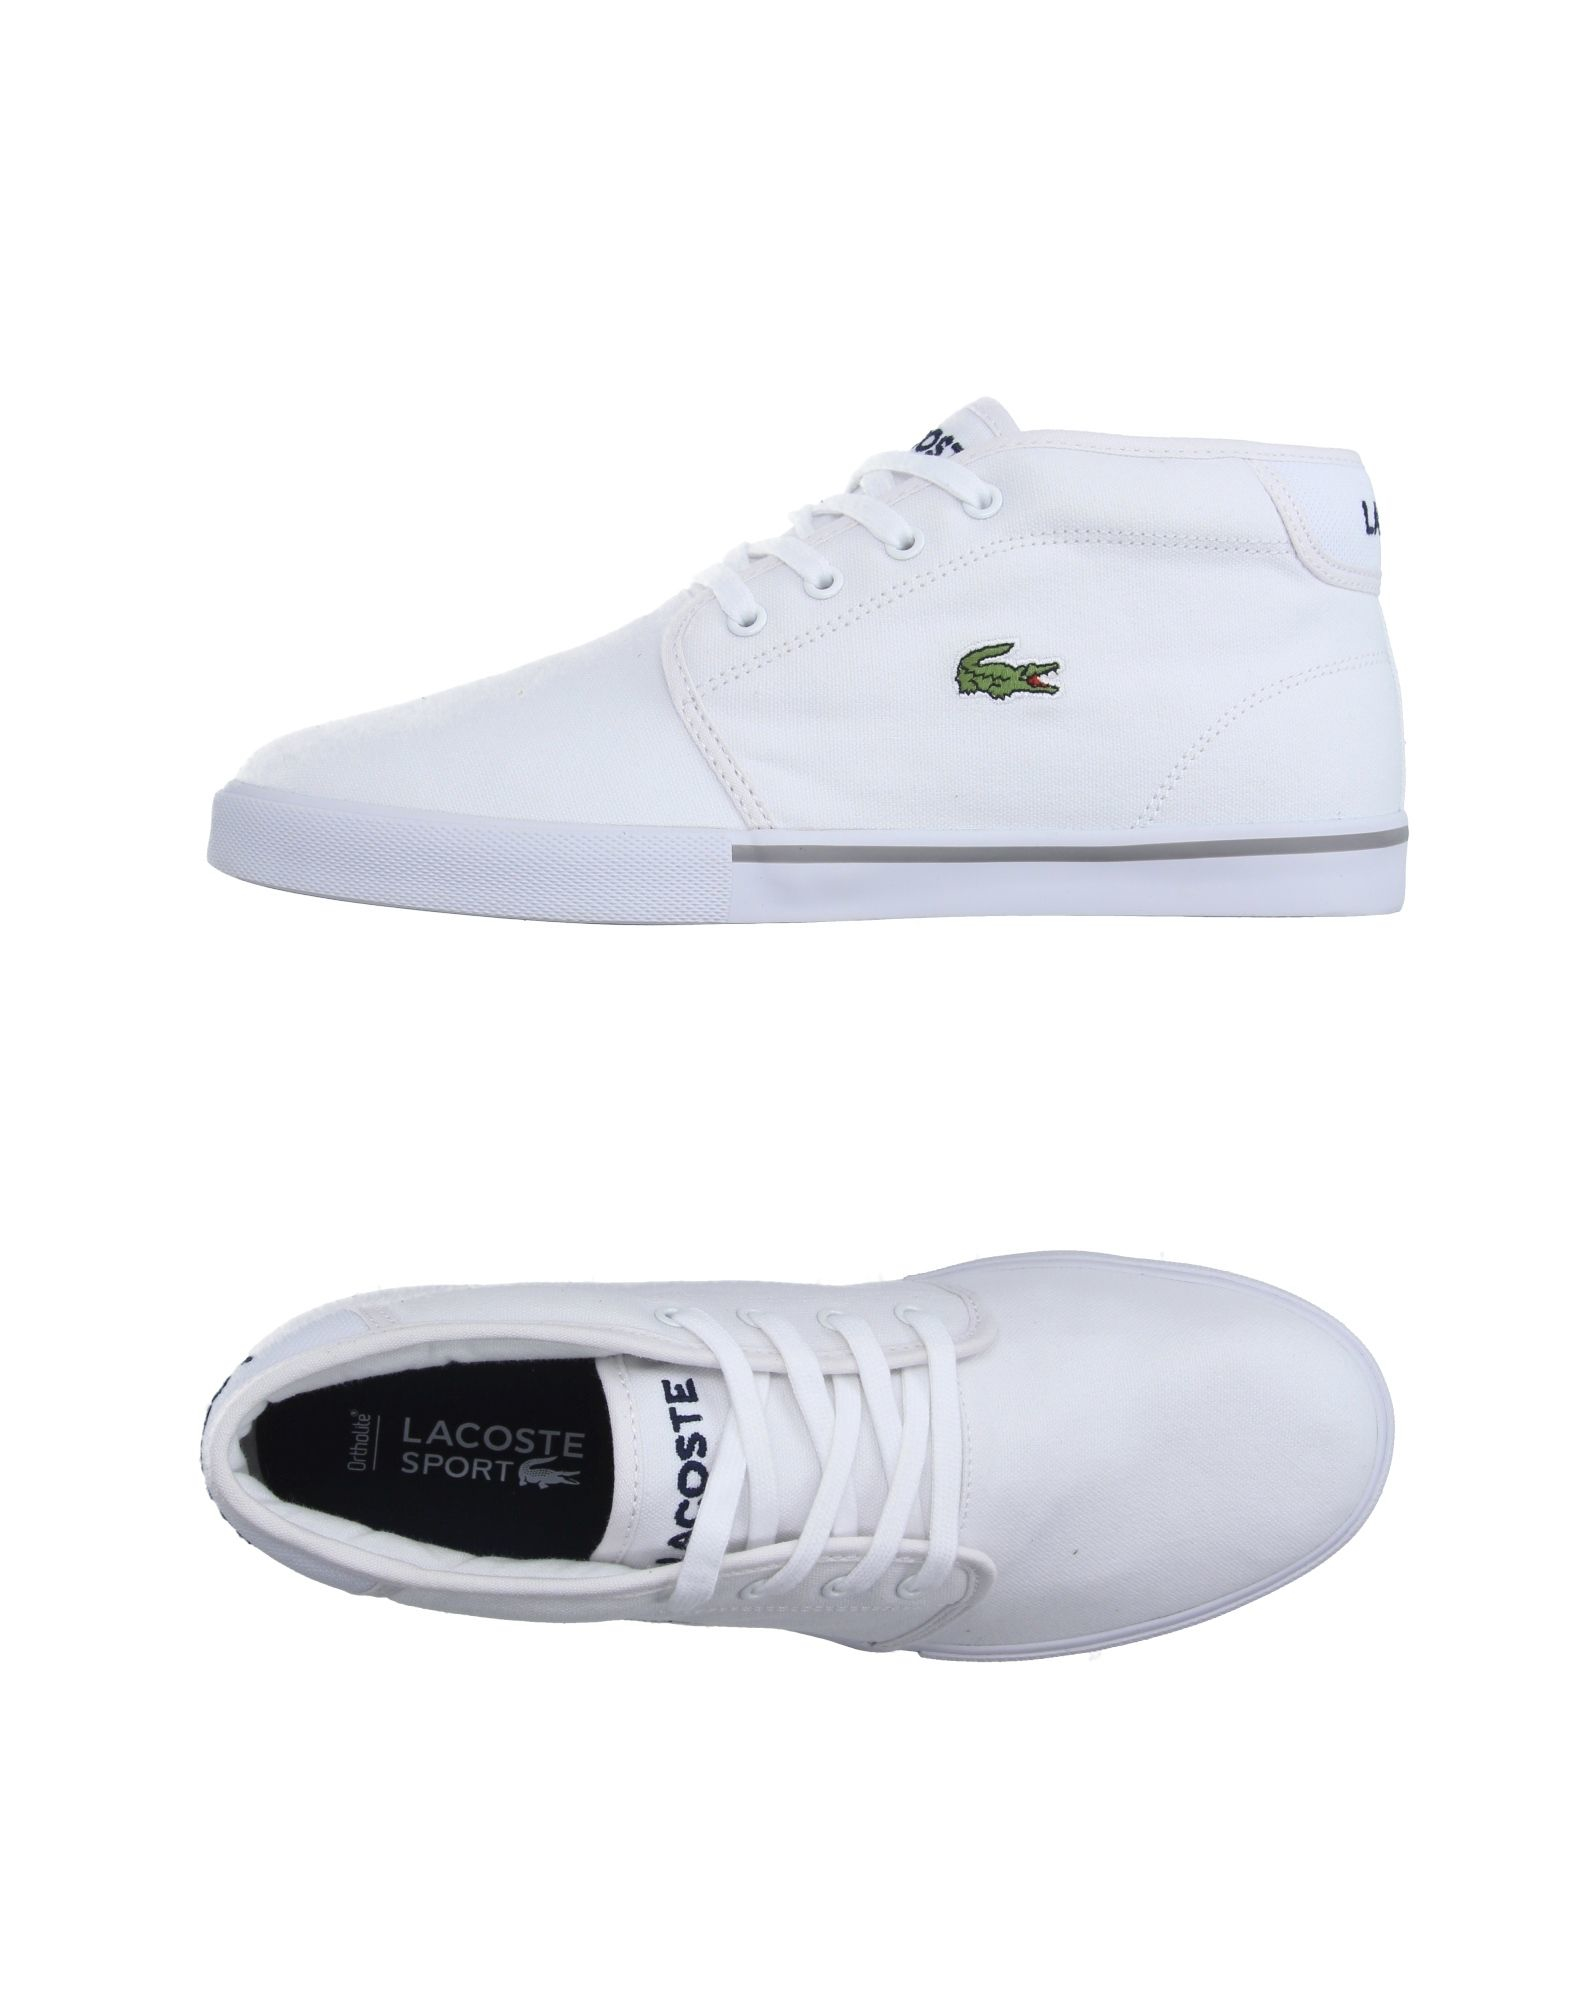 lacoste sport hightops amp trainers in white lyst